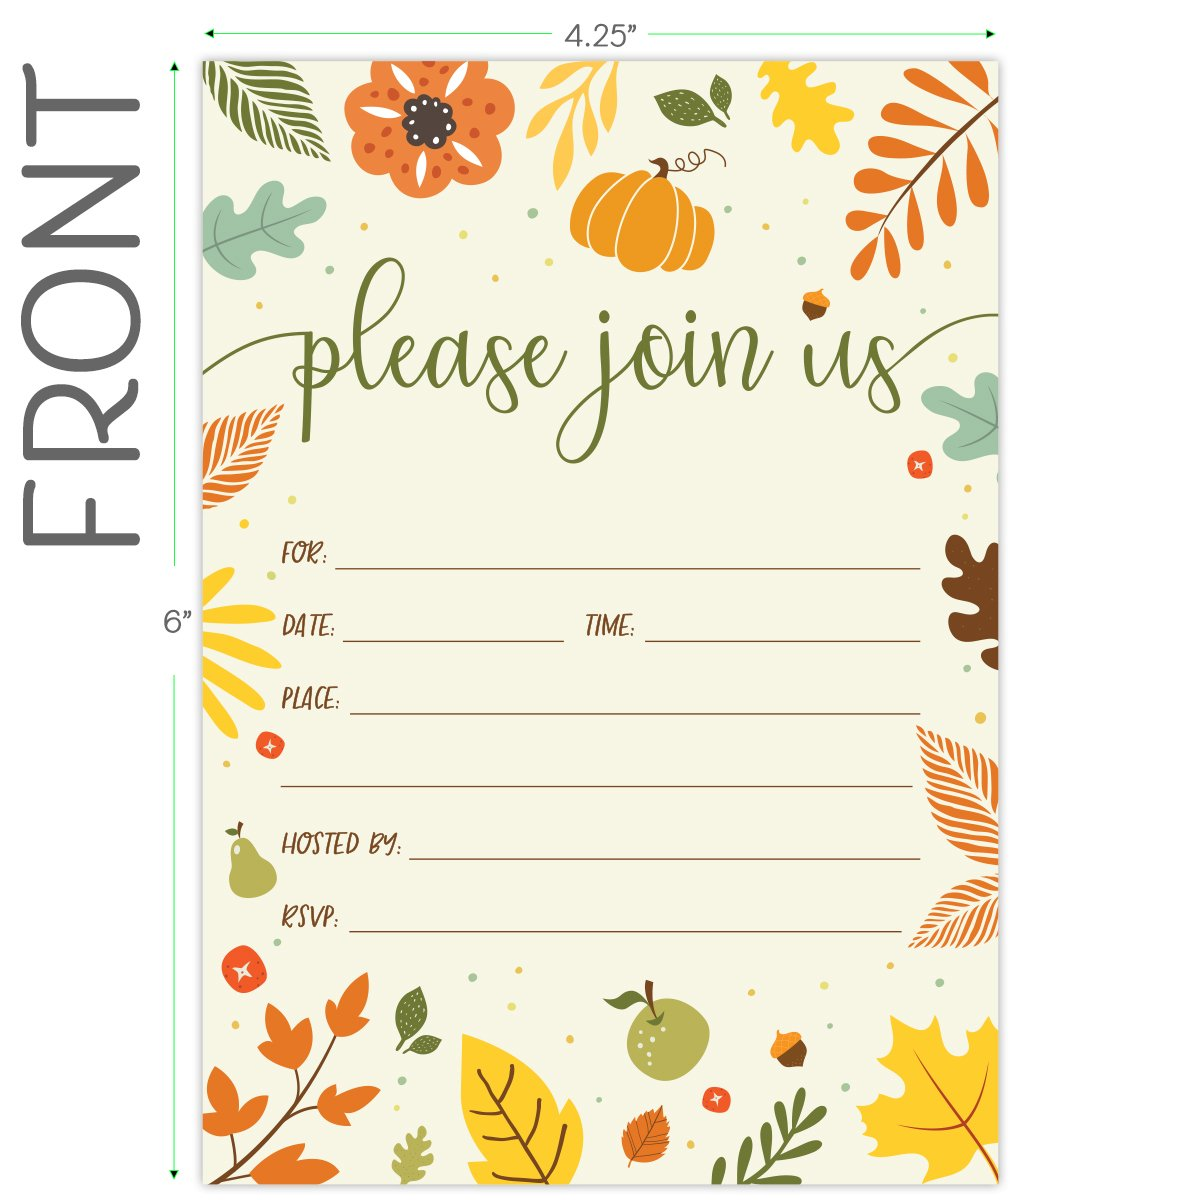 Koko Paper Co Fall Invitations in Autumn Colors with Pumpkin, Fruits and Florals. 25 Fill In Style Cards and Envelopes for Thanksgiving, Harvest Party, Birthday, Engagement, Bridal and Baby Shower, or by Koko Paper Co (Image #5)